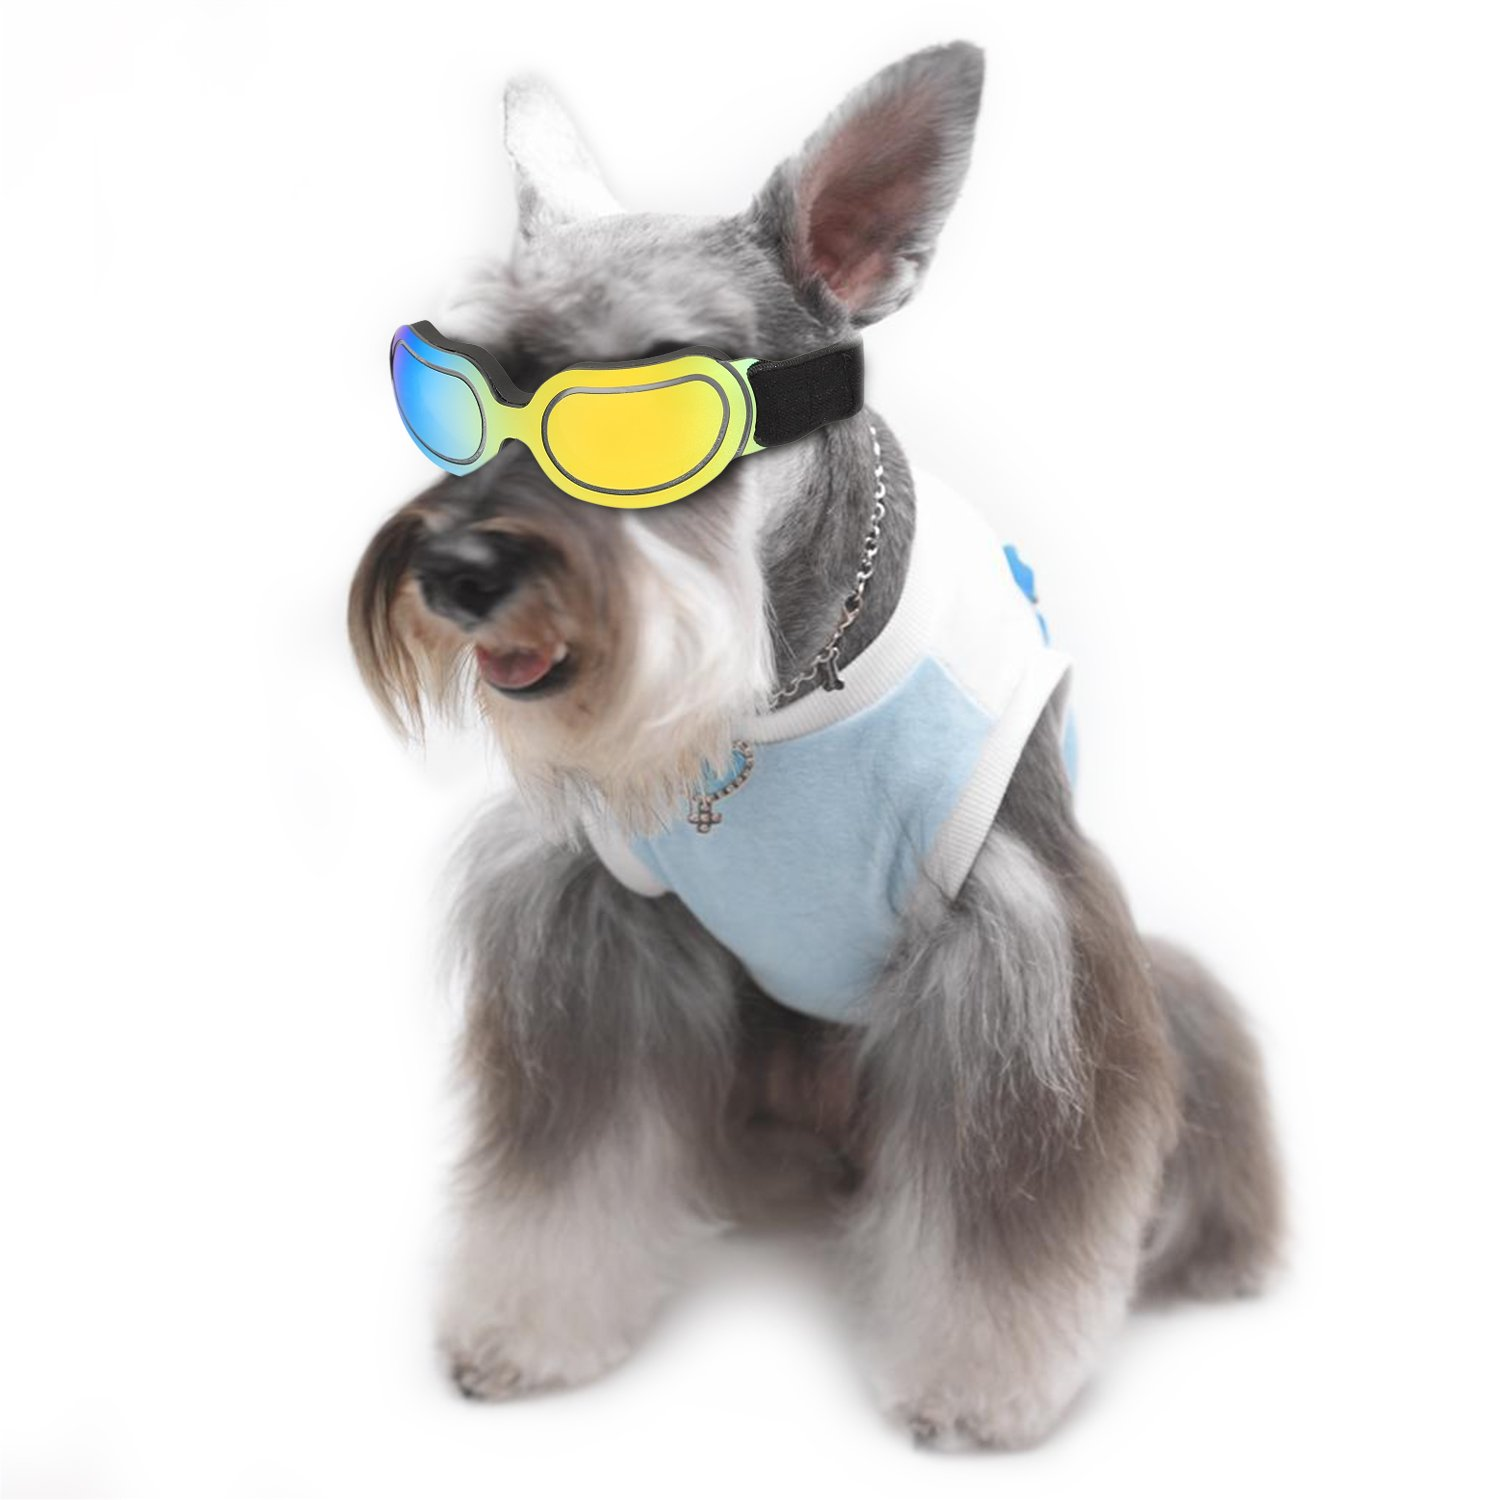 ABZON Cool Pet Sunglasses Dog Puppy Goggles Windproof UV Protection for Doggy/Cat, for Dogs and Pet Lover.(Multi-Colored)